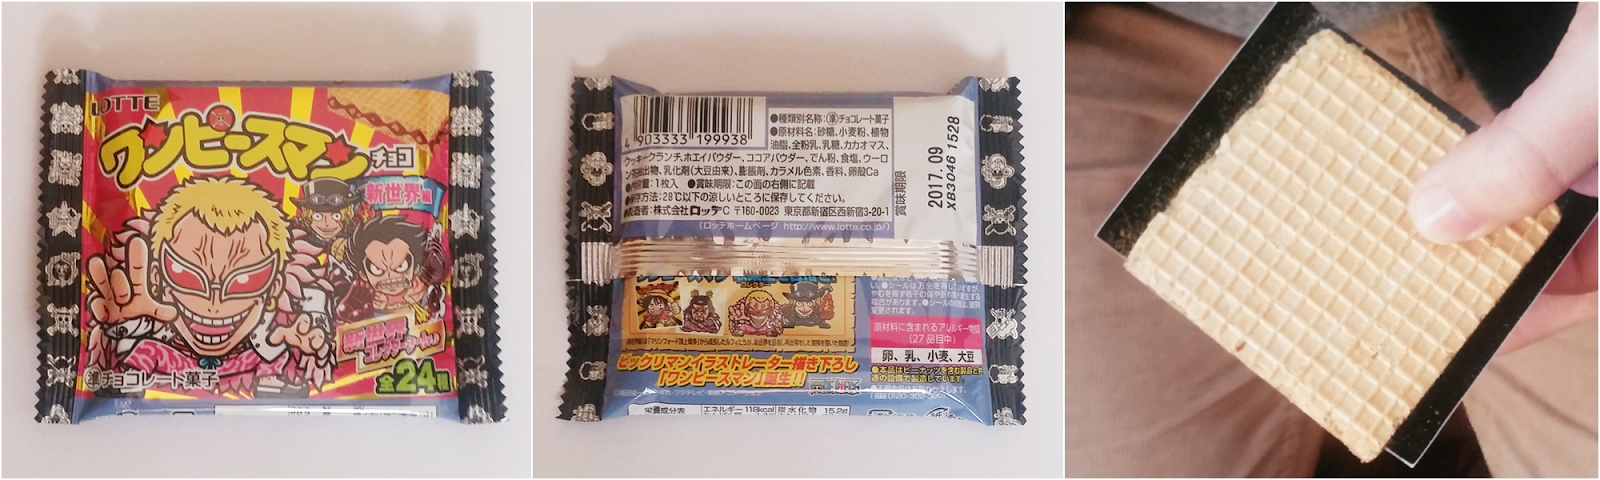 Tokyo Treat One Piece Chocolate Wafer